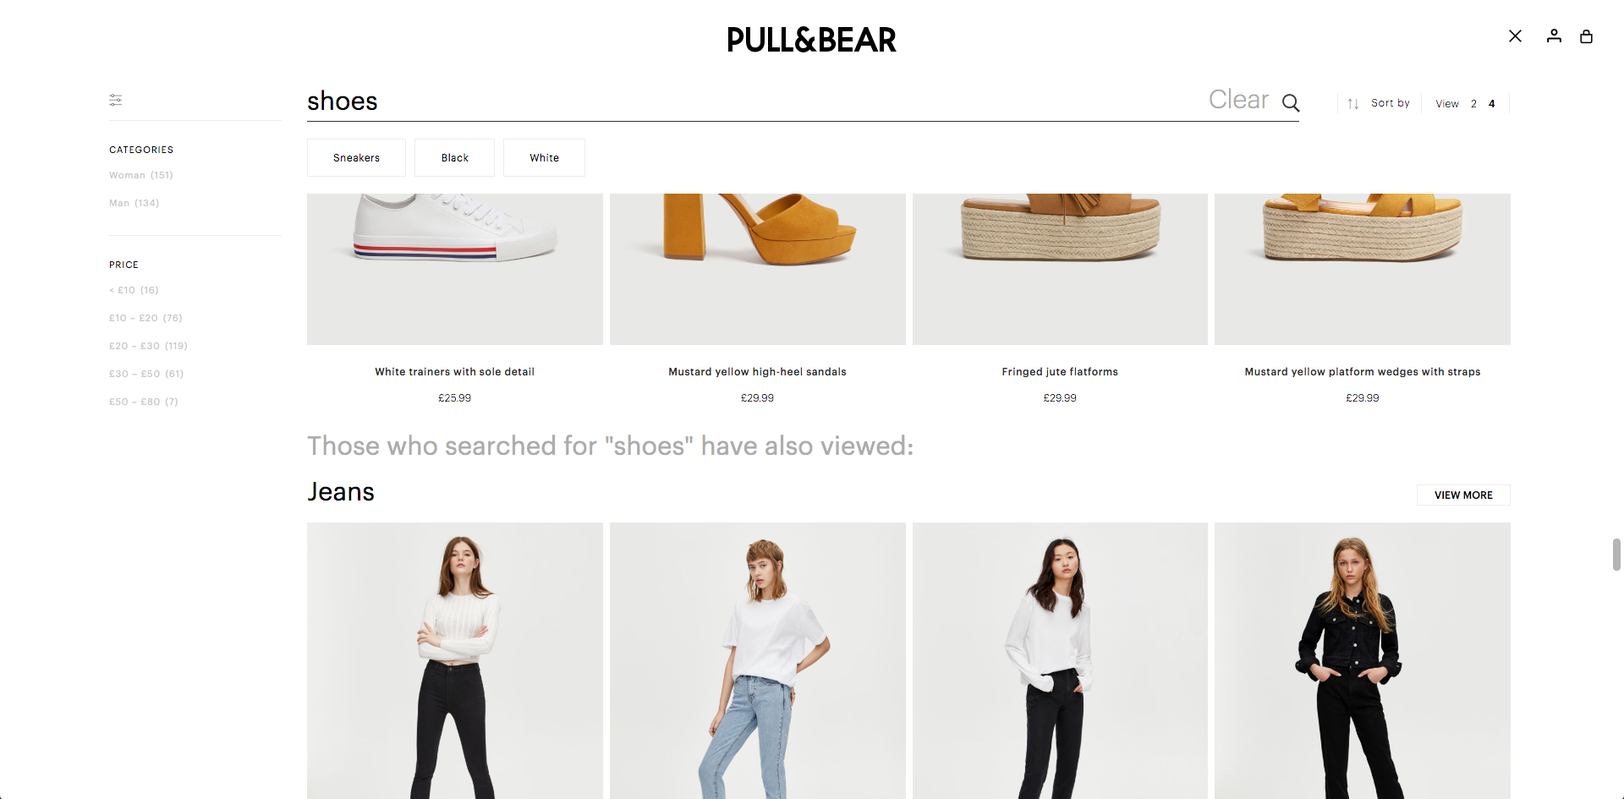 Next Queries appearing after scrolling through 12 rows in Pull&Bear